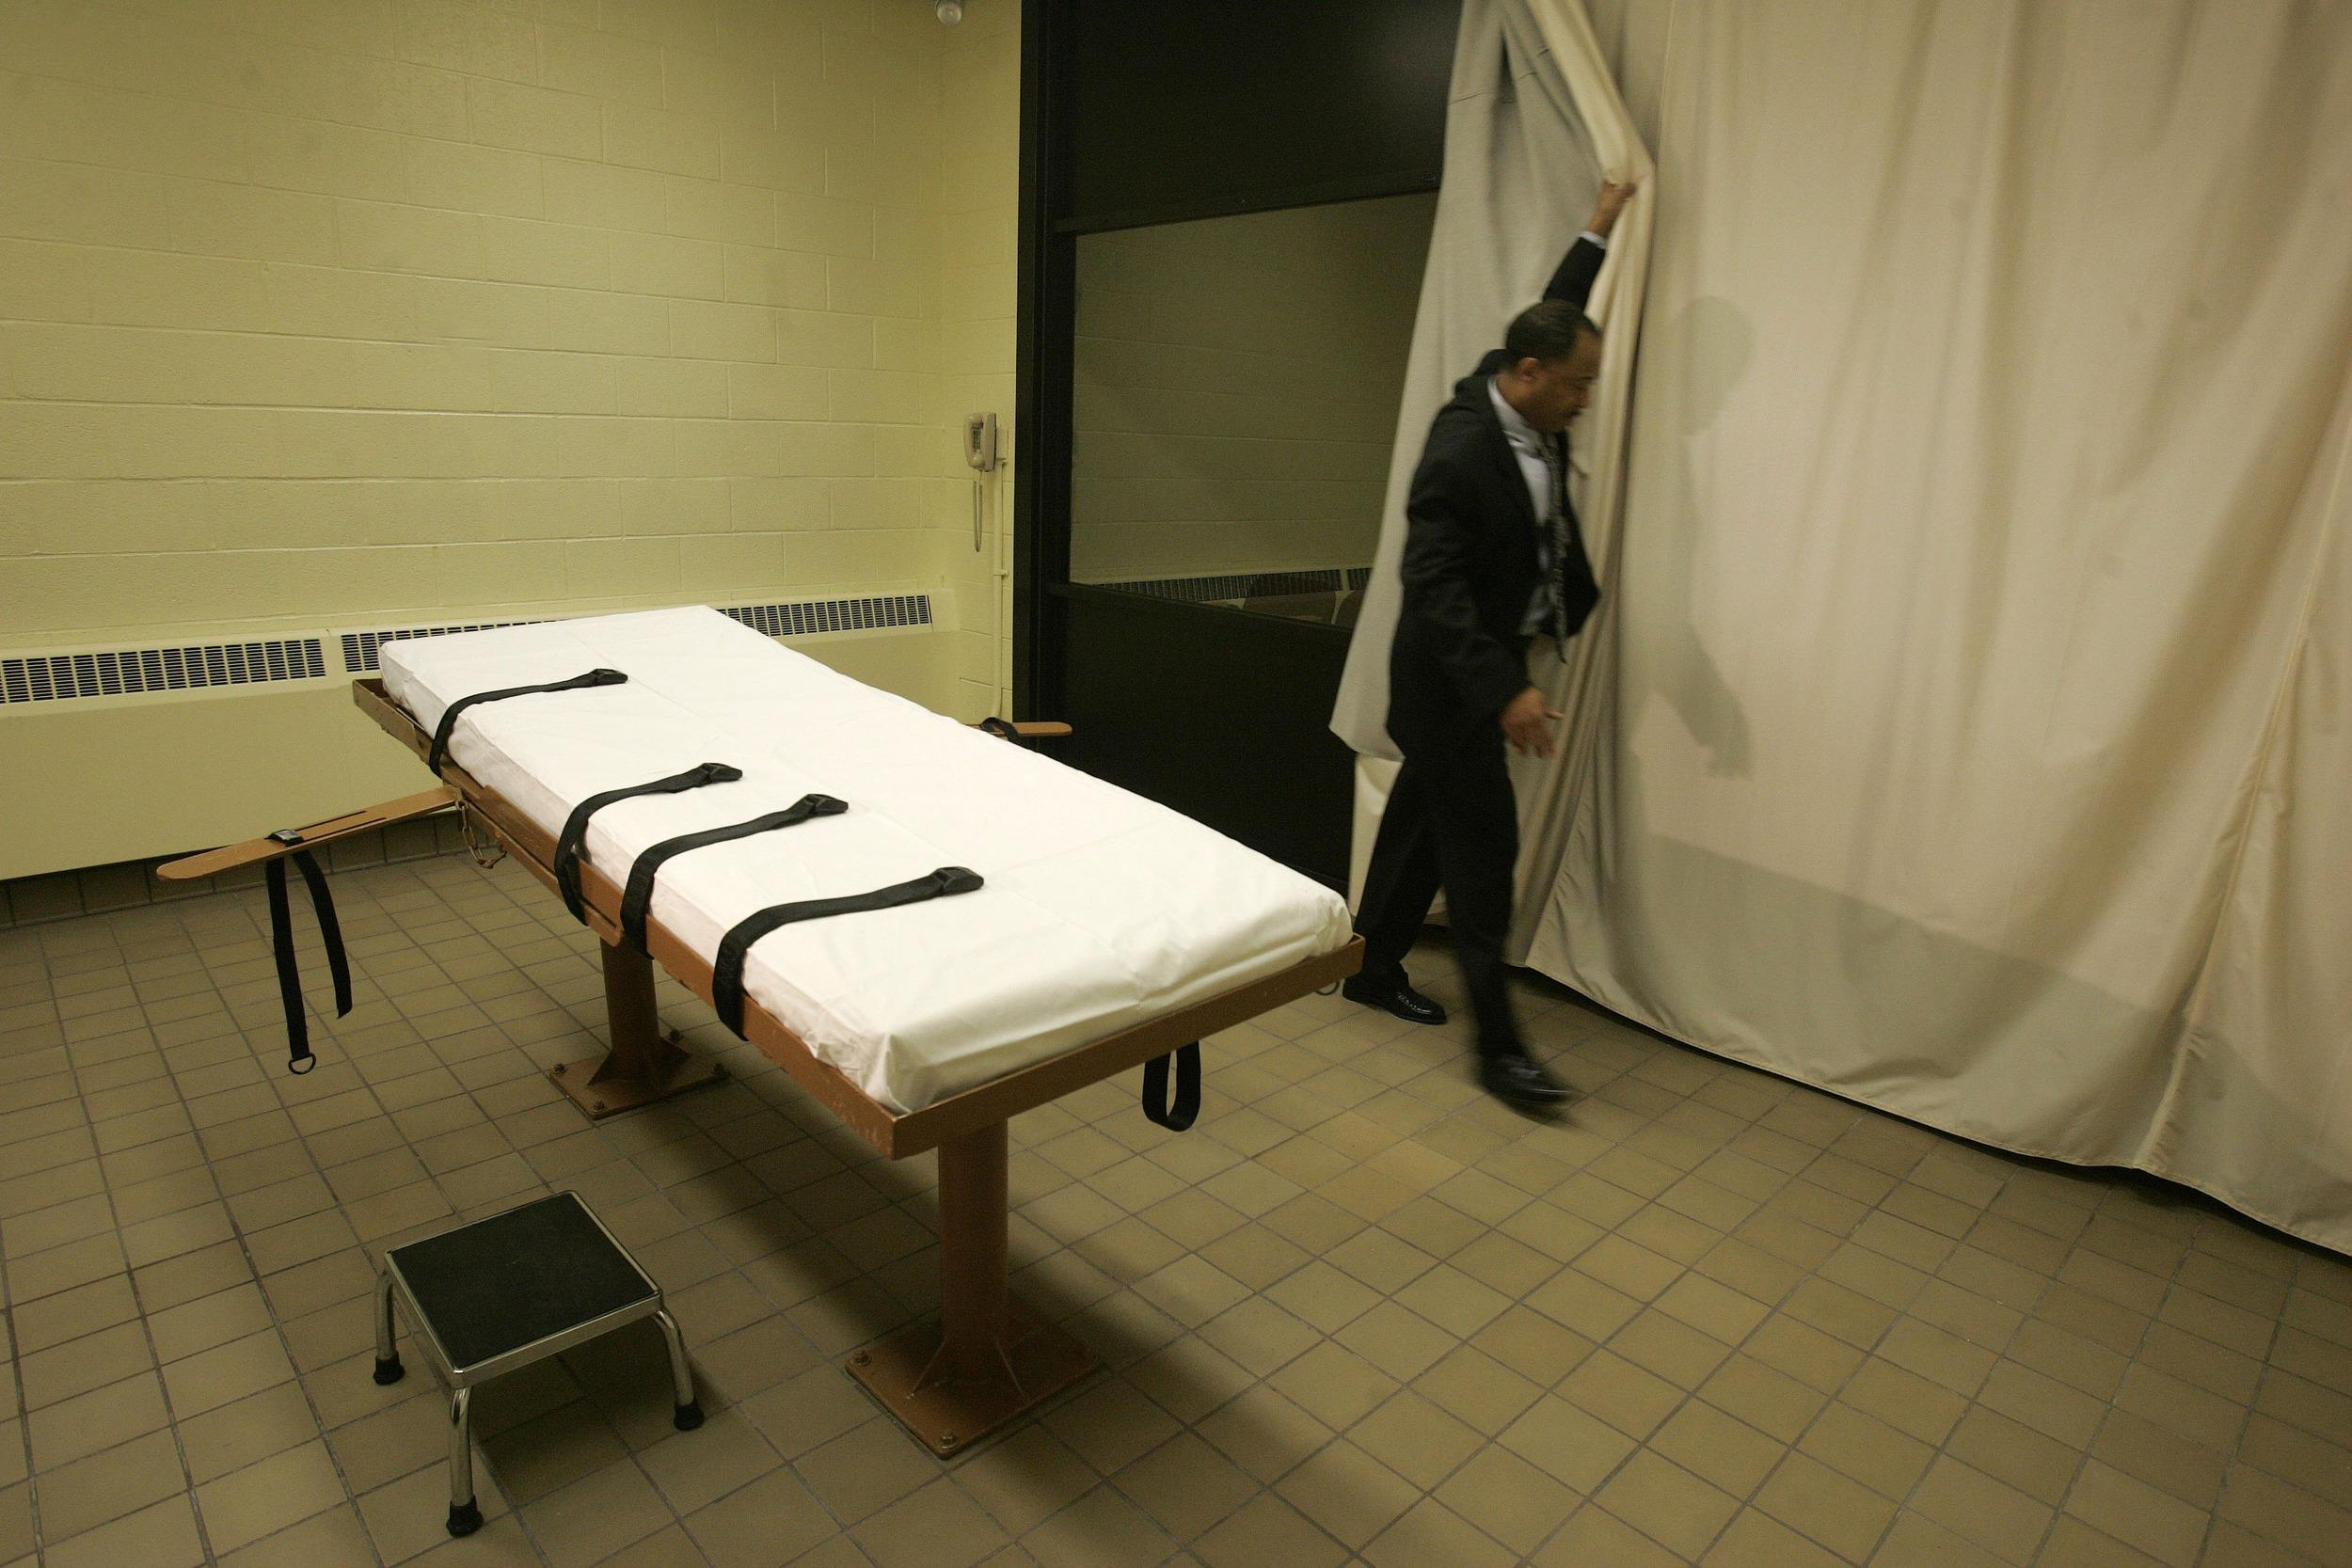 Image: Death chamber at the Southern Ohio Correctional Facility in Lucasville, Ohio